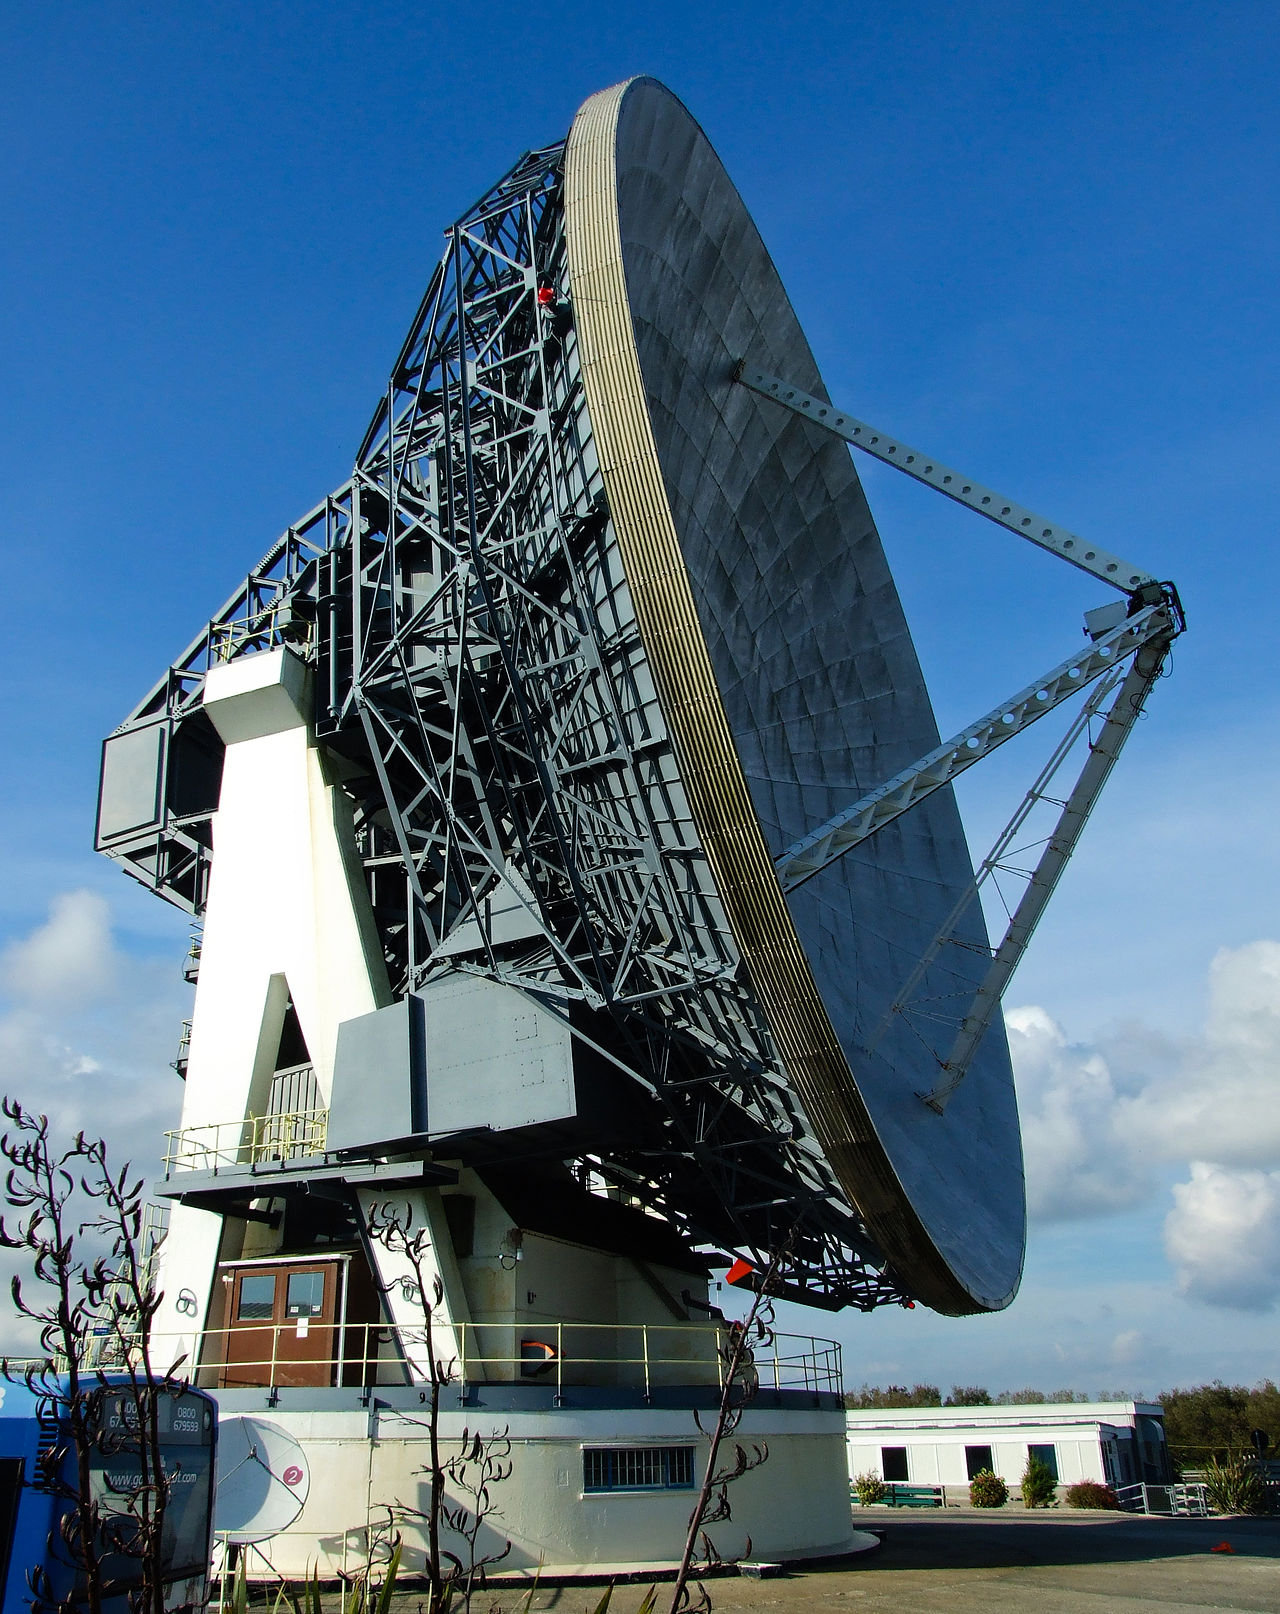 1280px-Goonhilly_Satellite_Earth_Station%2C_Cornwall%2C_England-29Sept2009.jpg